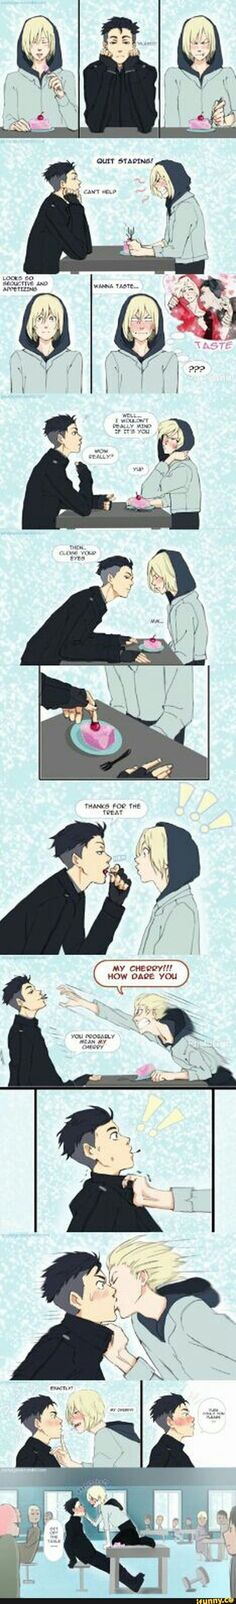 Seems like something Yurio would do xD